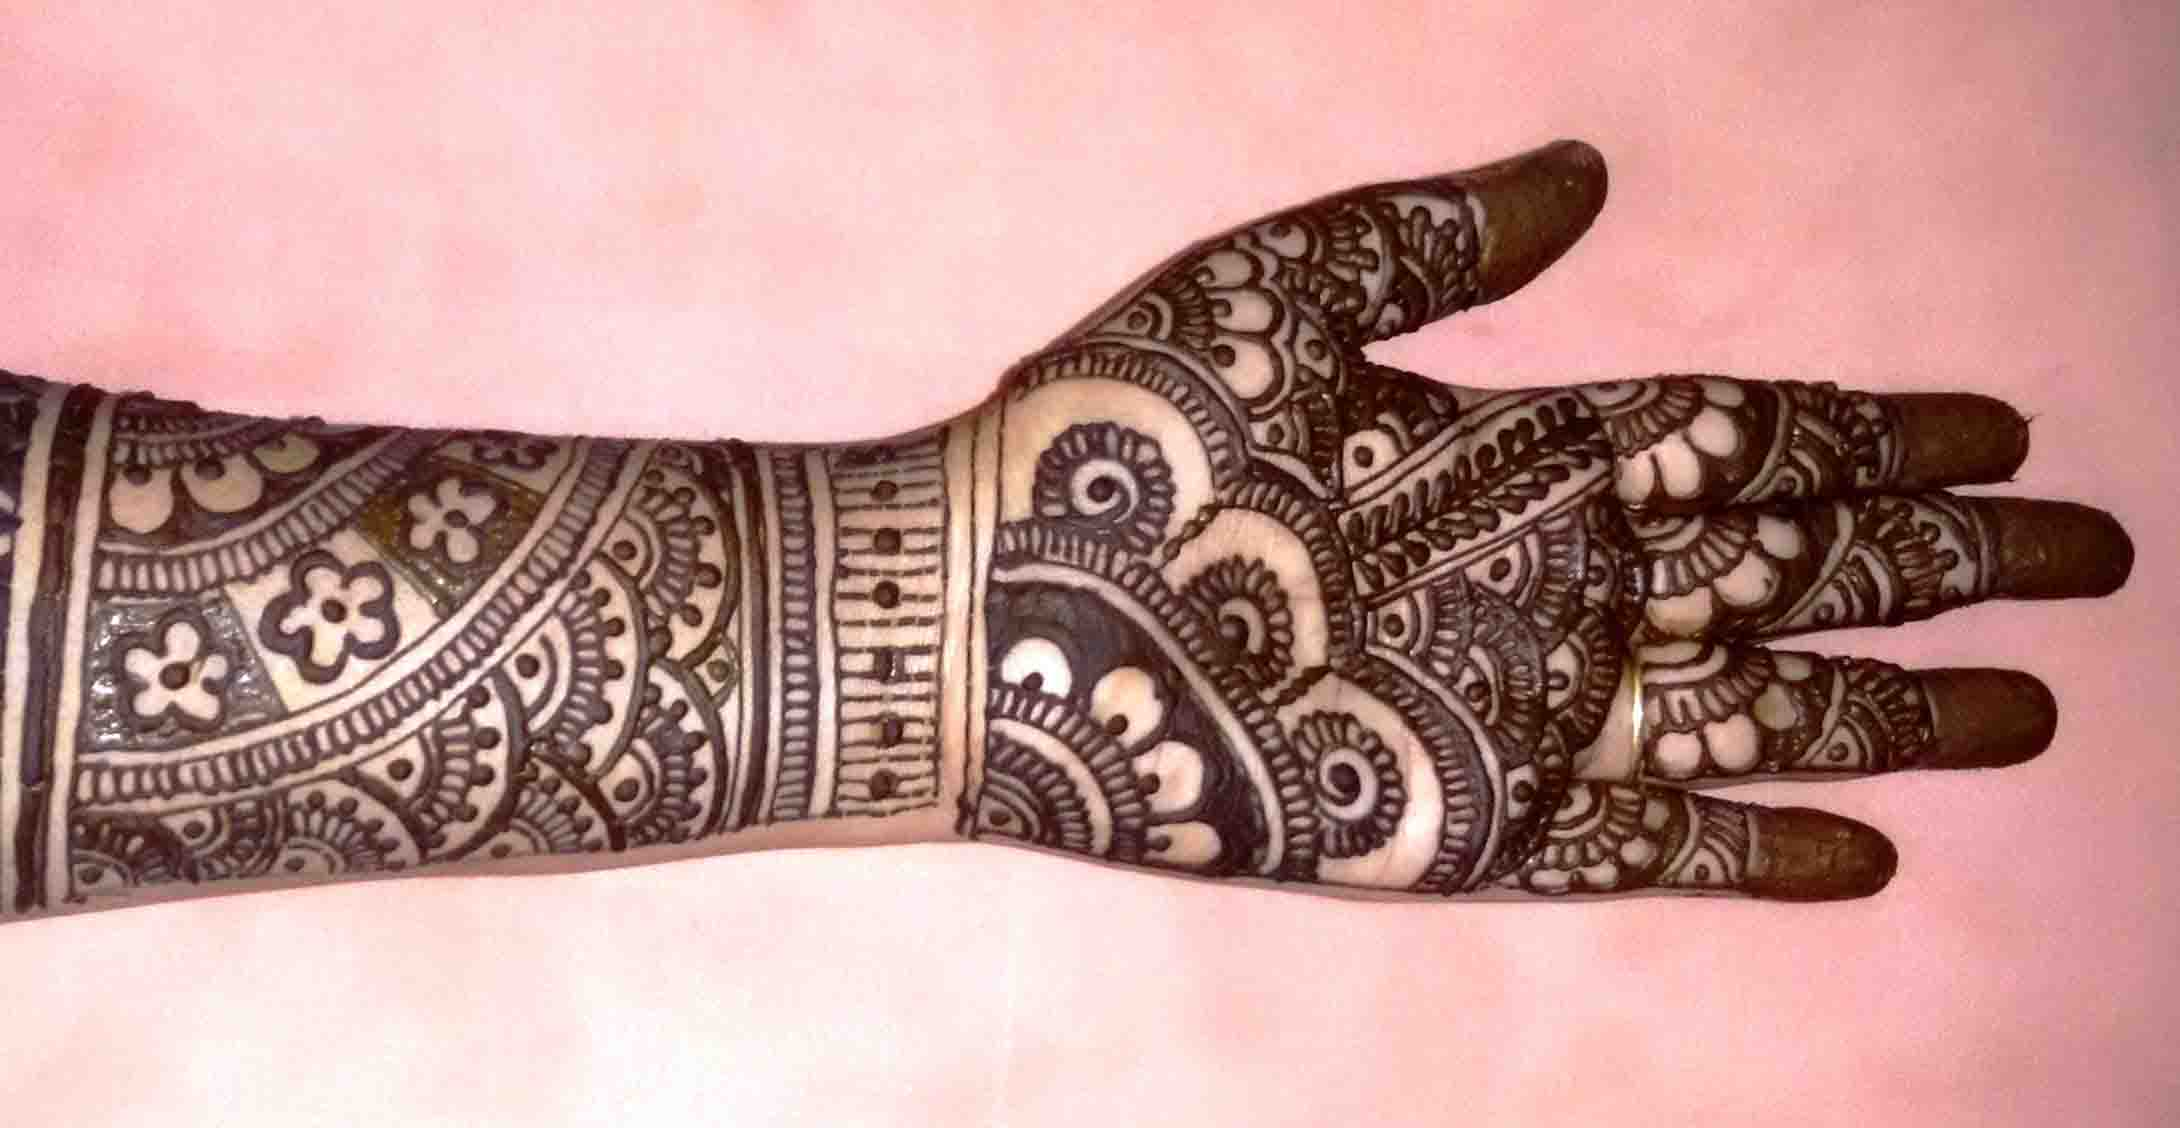 Communication on this topic: Latest Pakistani mehndi designs – Dulhan pakistani , latest-pakistani-mehndi-designs-dulhan-pakistani/